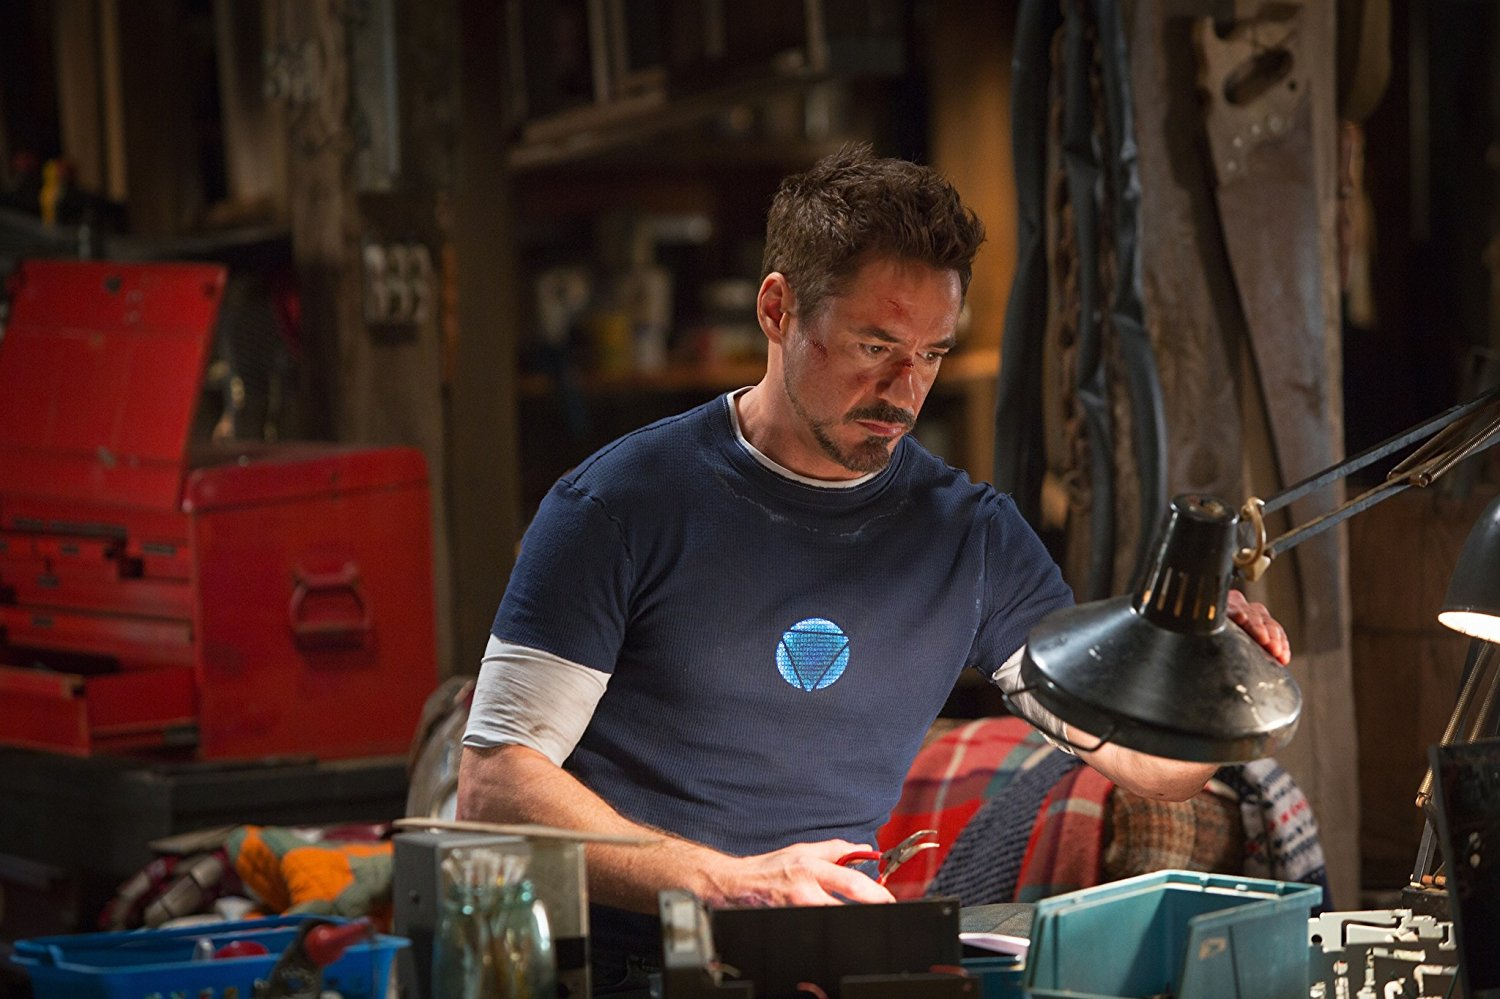 Tony Stark working on his suit in Iron Man 3